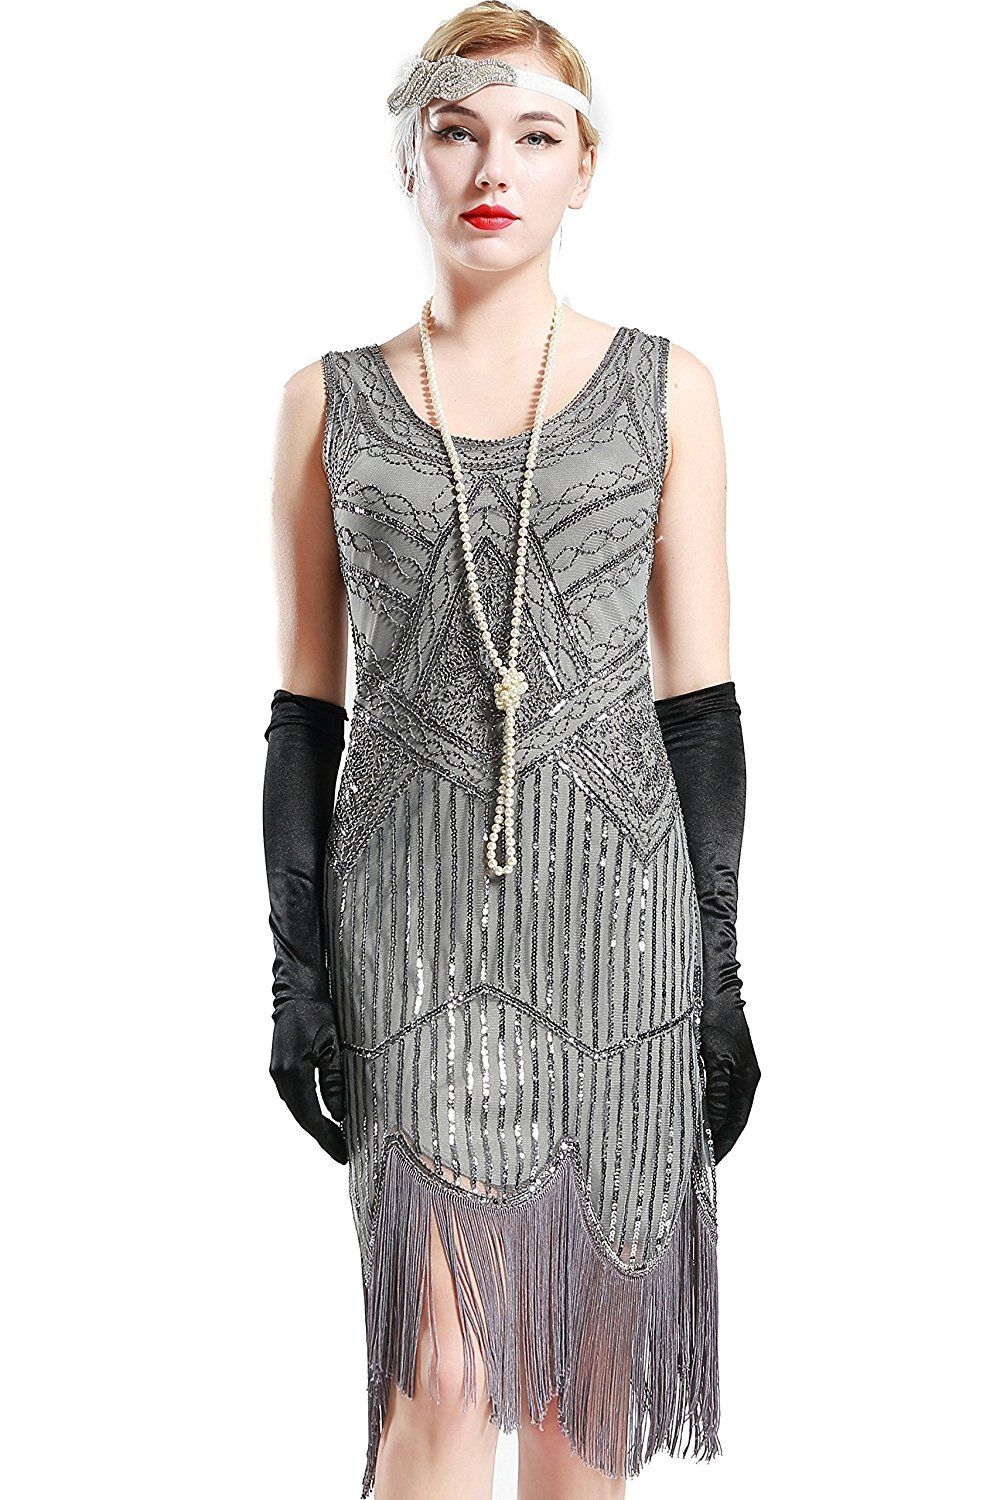 8865a1ff47e78 AmazonSmile  BABEYOND 1920s Flapper Dress Roaring 20s Great Gatsby Costume  Dress Fringed Sequin Dress Embellished Art Deco Dress  Clothing